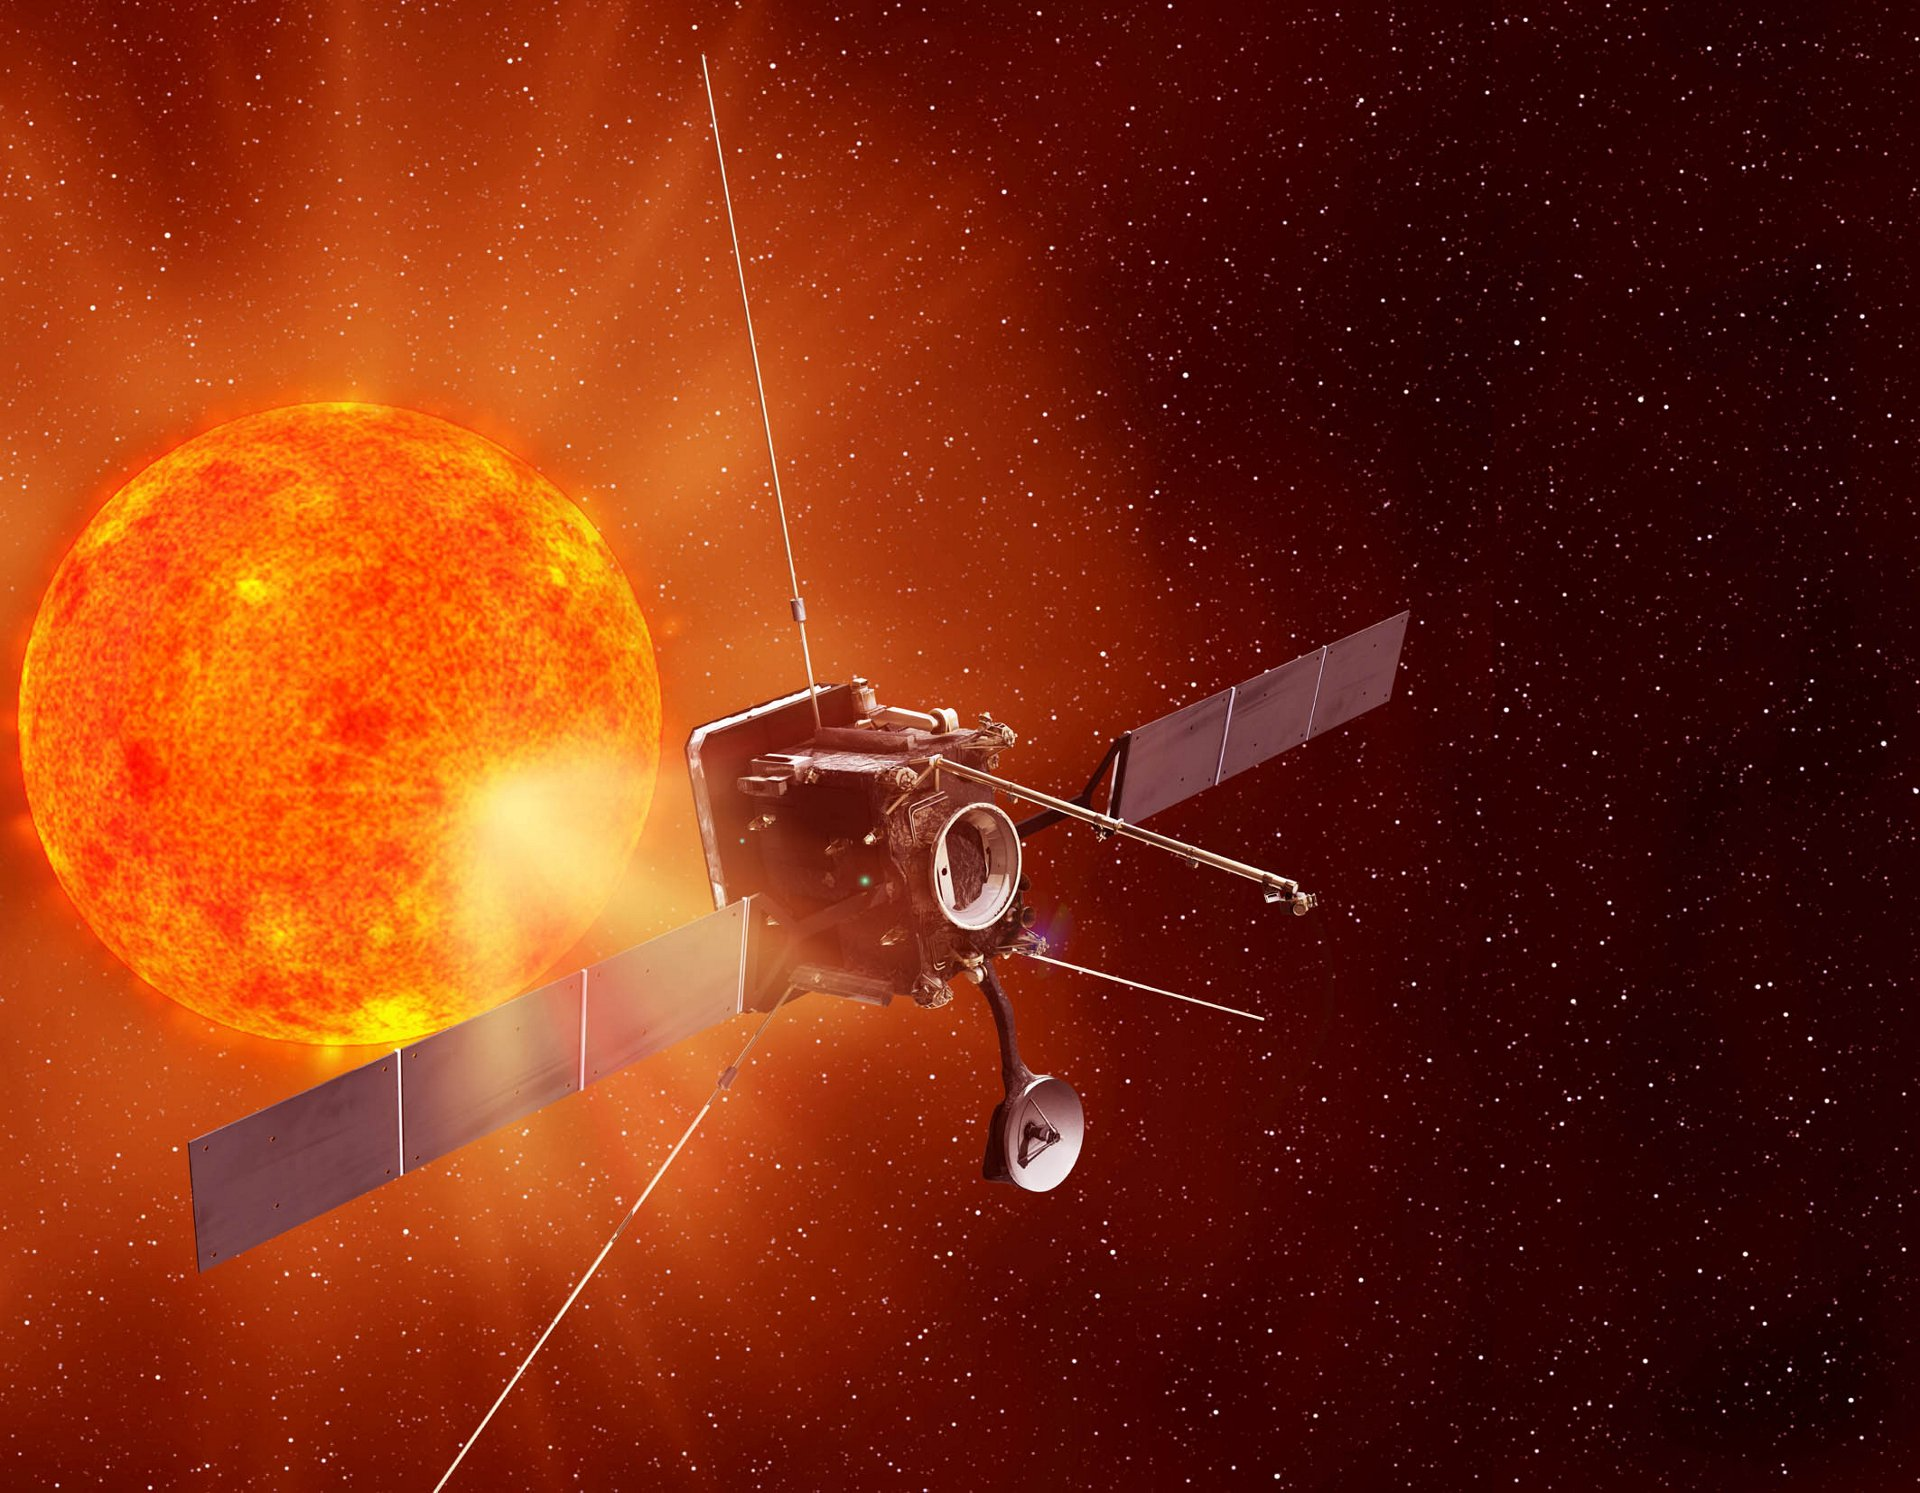 Solar Orbiter, the European Space Agency's (ESA) flagship mission to study the Sun